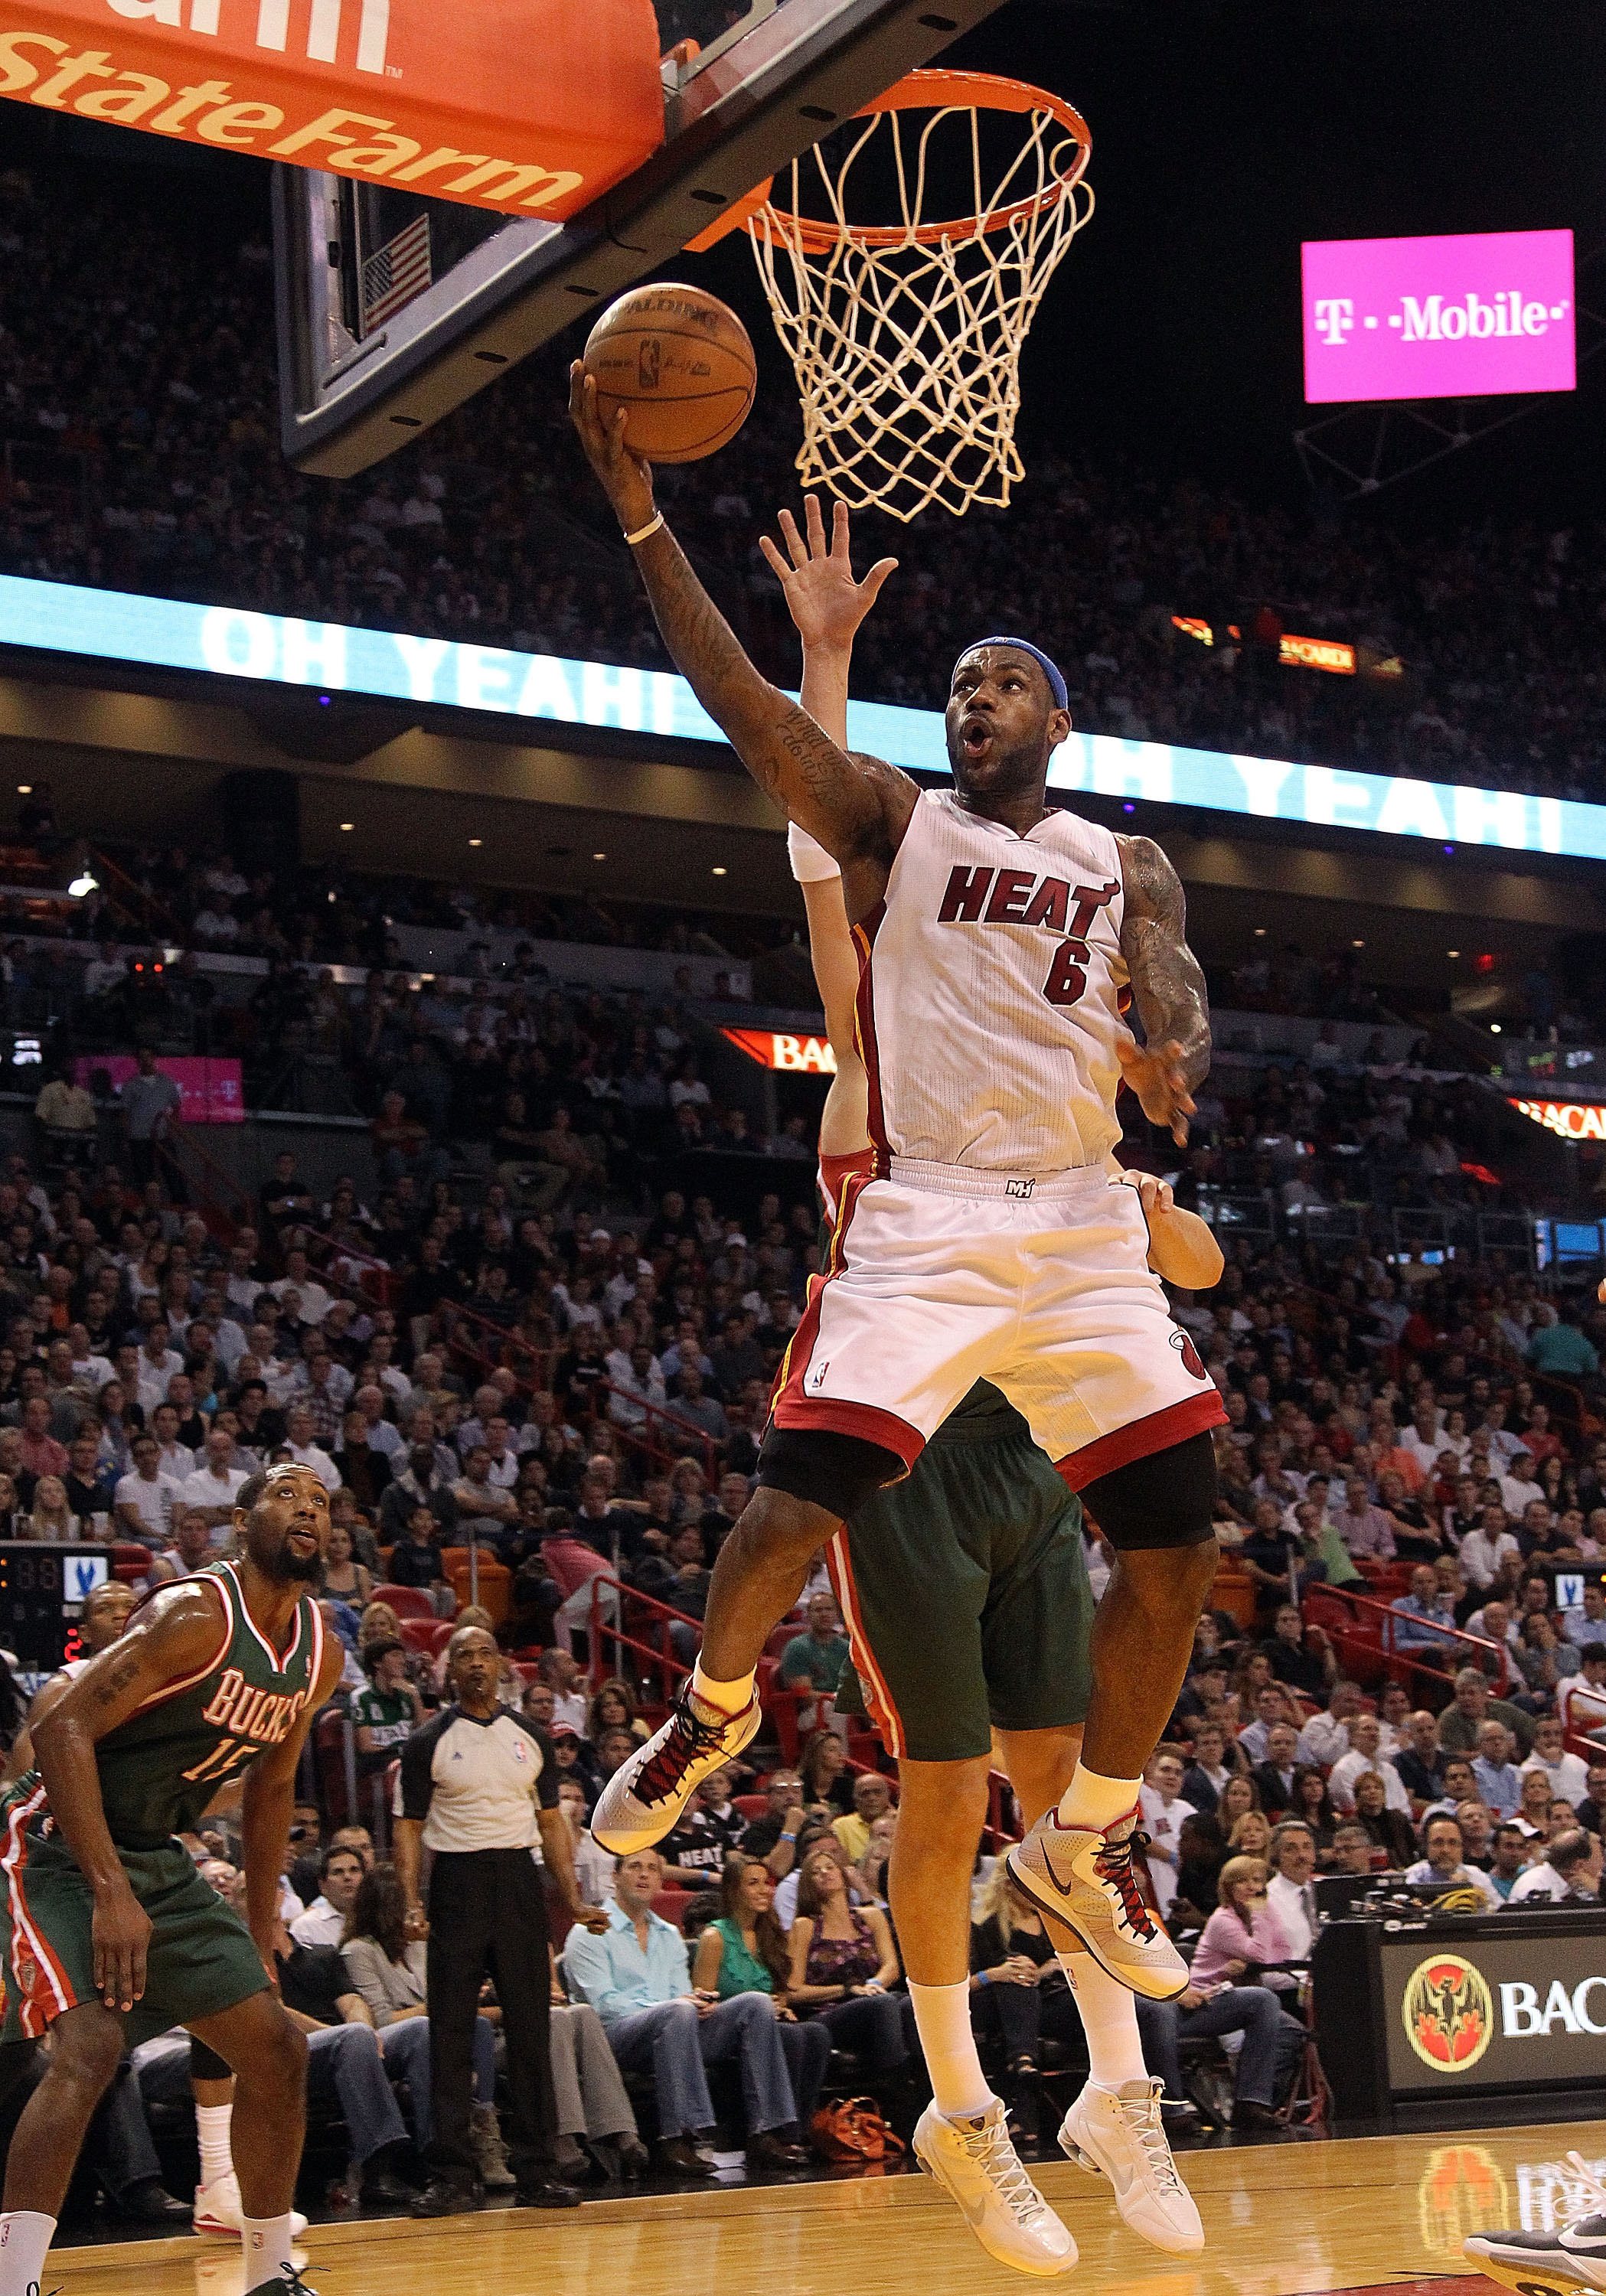 MIAMI, FL - JANUARY 04:  LeBron James #6 of the Miami Heat drives to the rim during a game against the Milwaukee Bucks at American Airlines Arena on January 4, 2011 in Miami, Florida. NOTE TO USER: User expressly acknowledges and agrees that, by downloadi